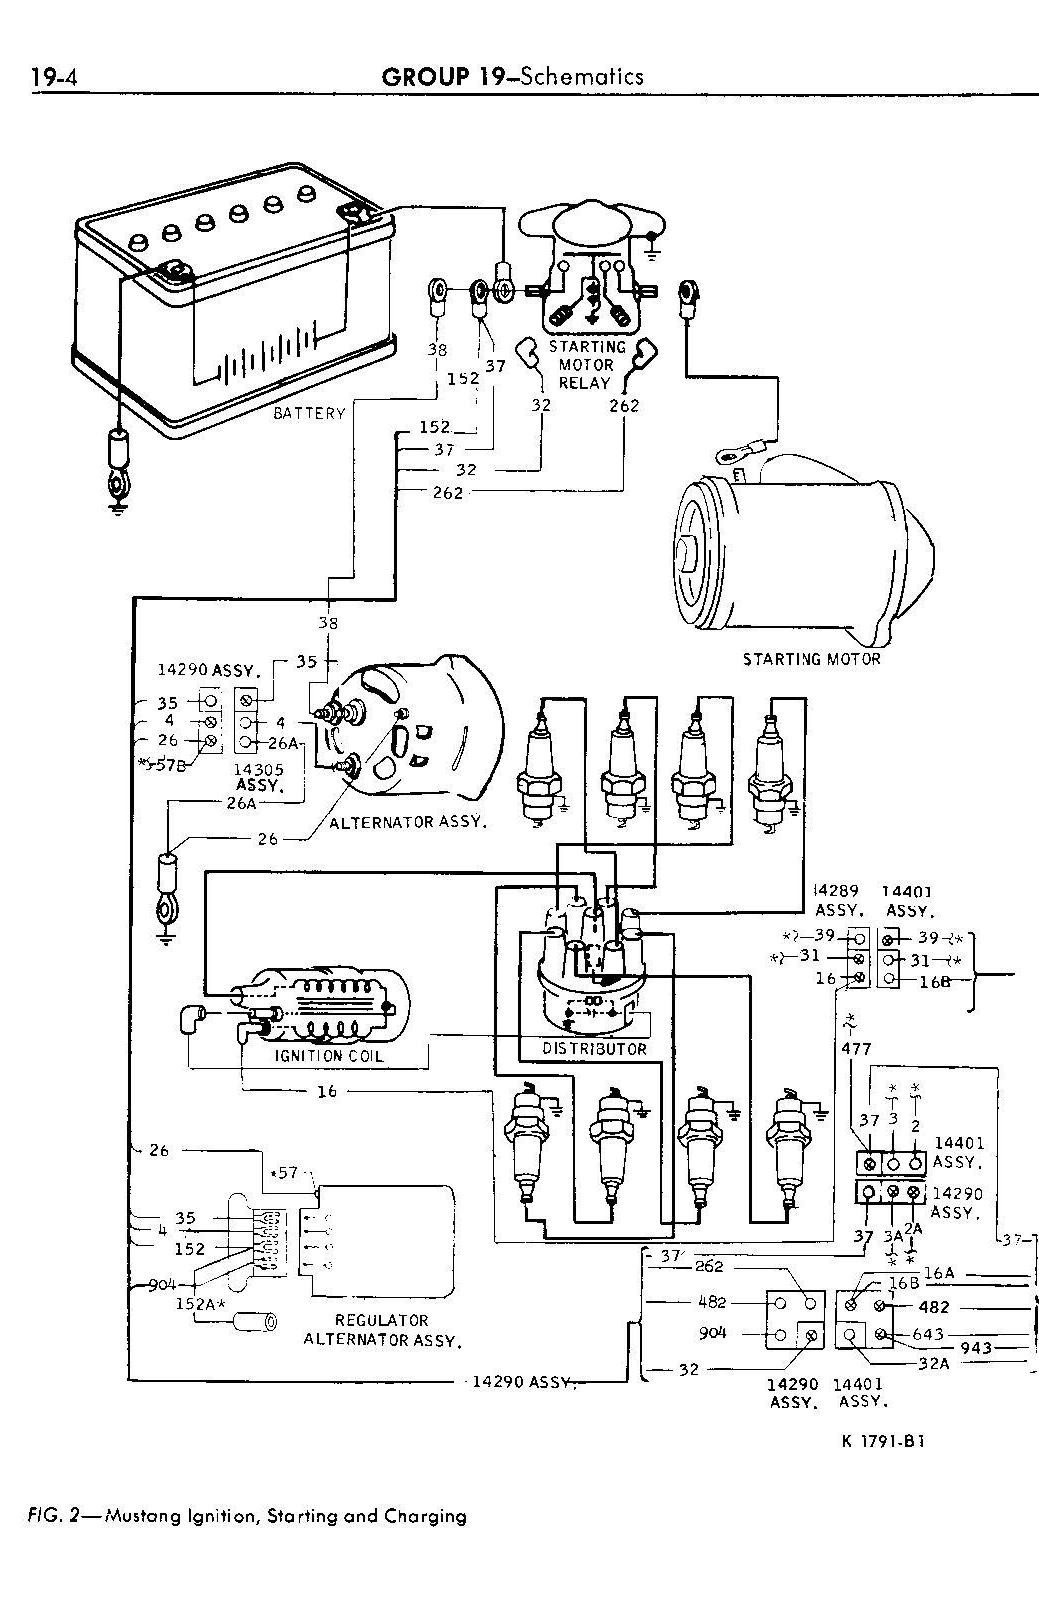 Diagram Clutch Safety Switch Wiring Diagram Full Version Hd Quality Wiring Diagram Adiagramsx21 Pergotende Roma It